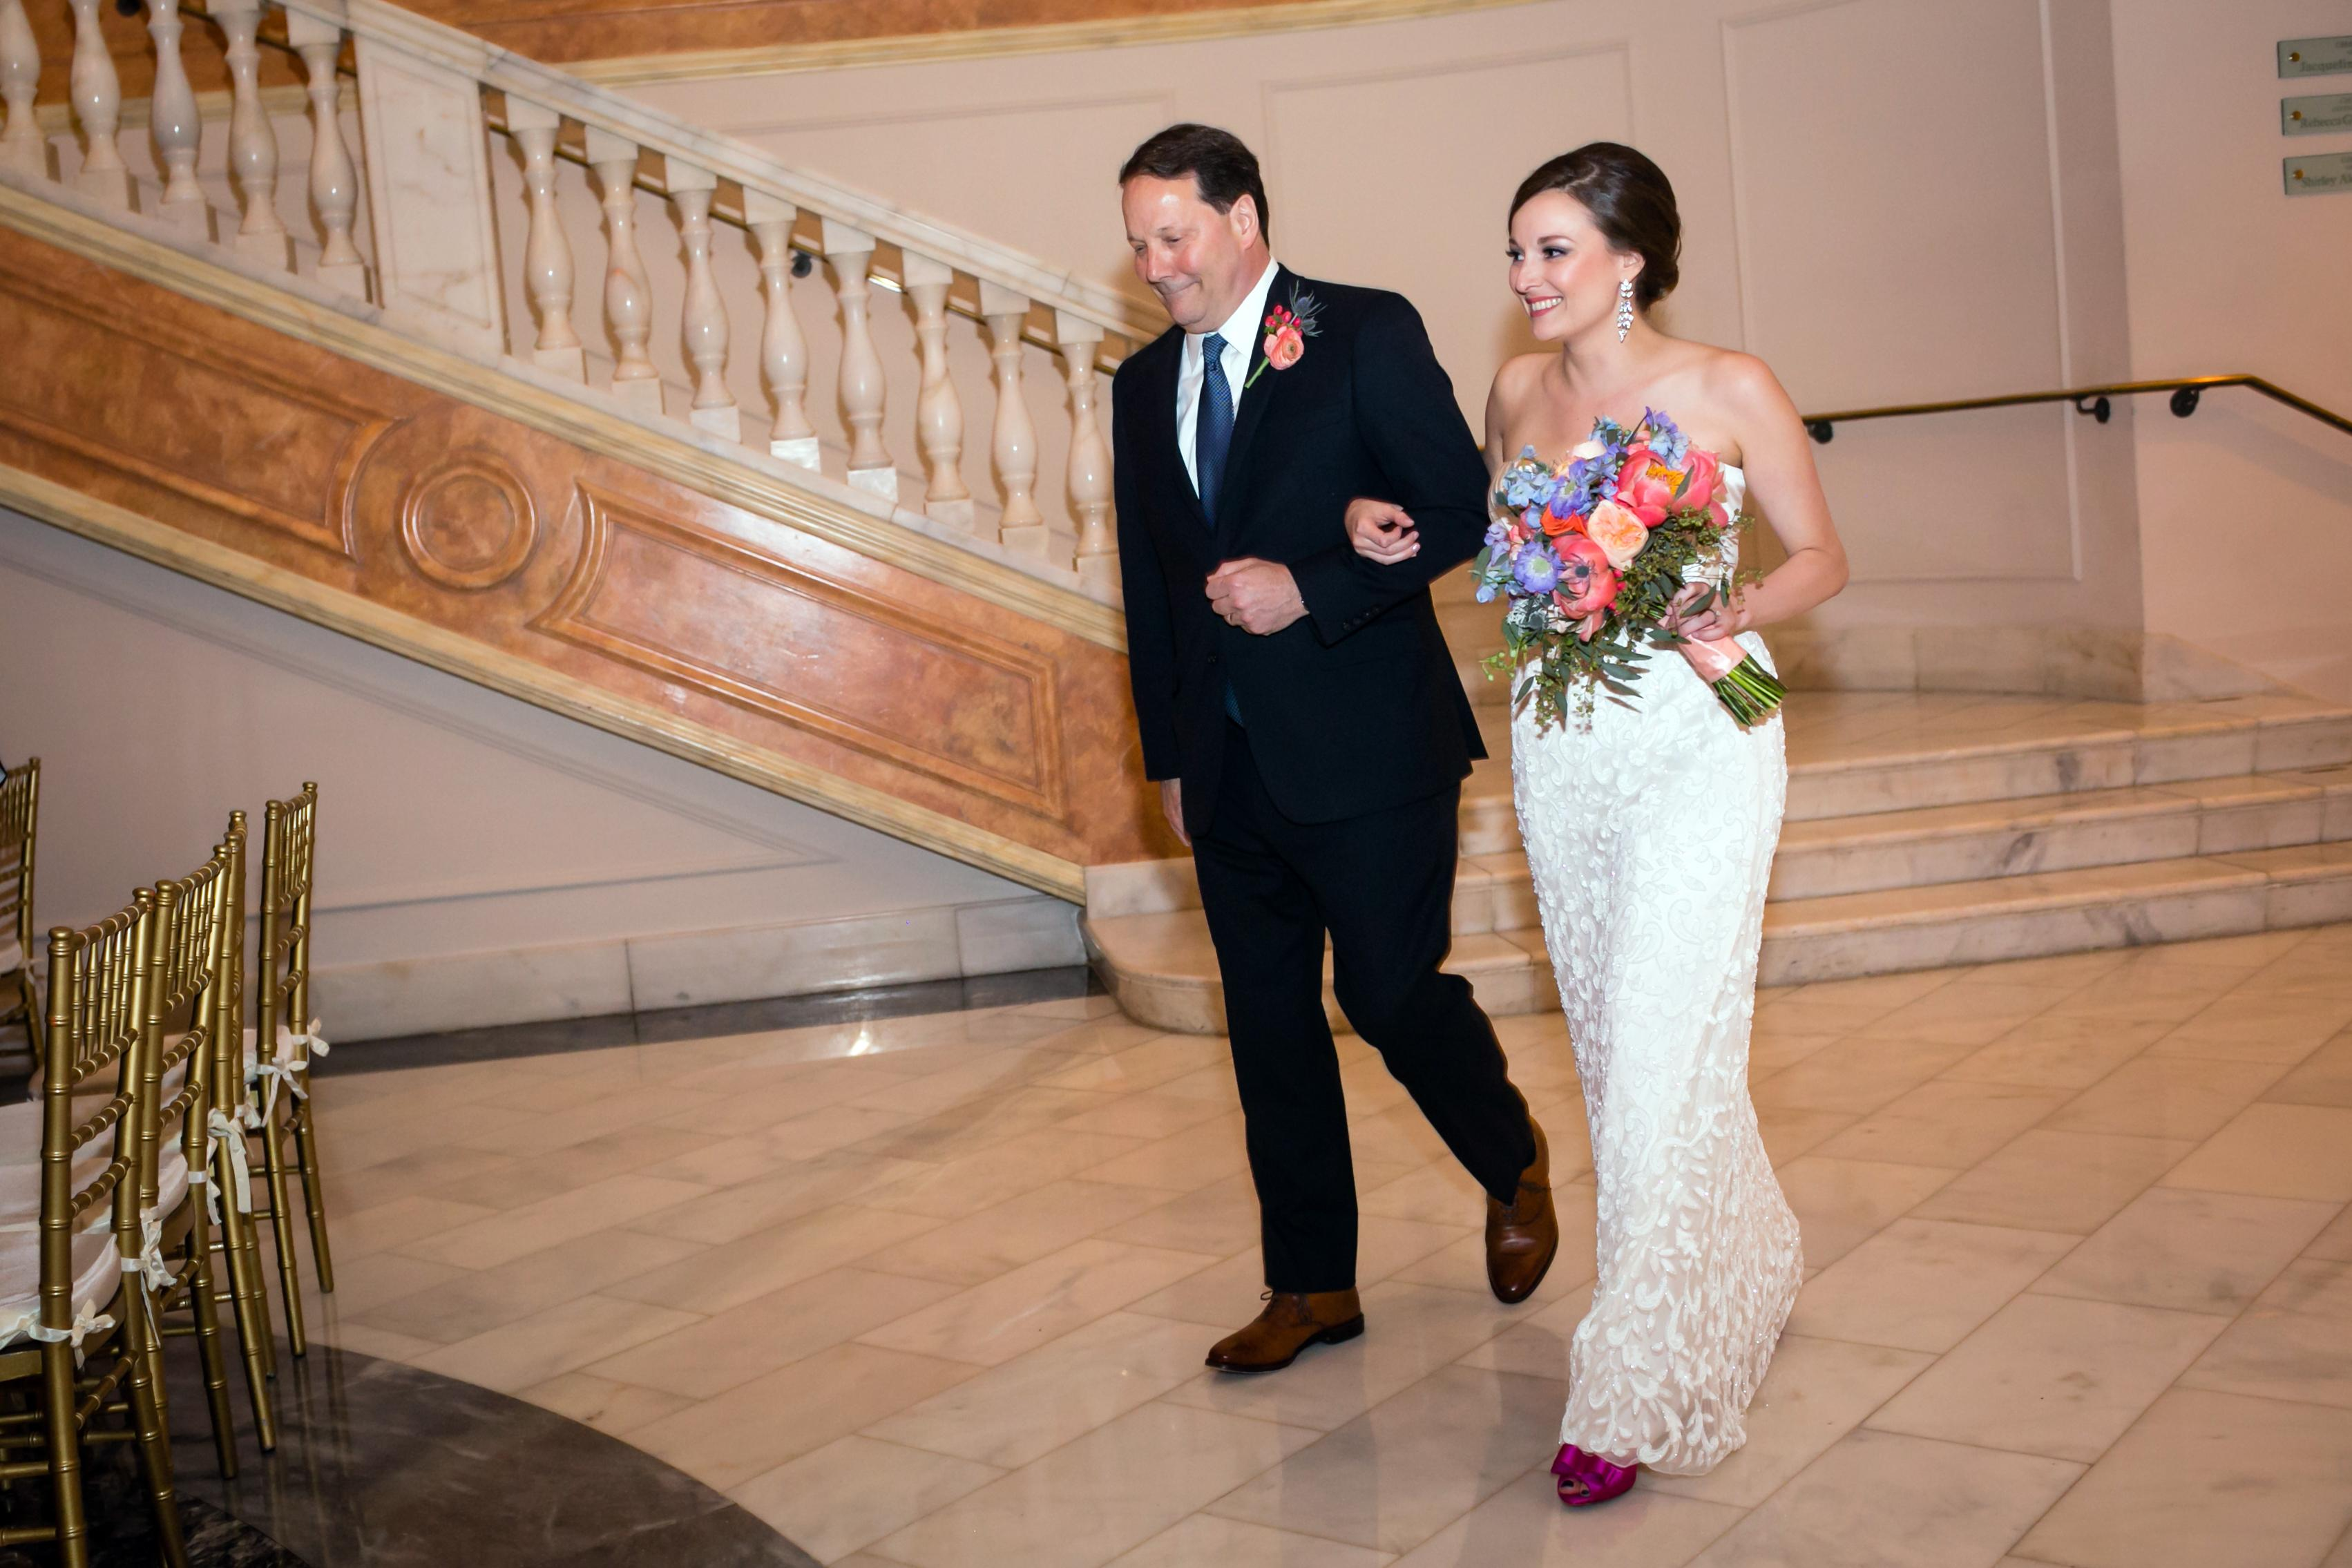 Amy & Ryan's Wedding Day // Venue: National Museum of Women in the Arts // Hair: Devon Baltimore (http://www.updospecialist.com/) // Makeup: Lauren Jaber, Real Doll Makeup (http://realdollmakeup.com/) // Florist: Flowers by Lisa (http://floraldesignsbylisa.com/) // Dress: Made custom by the bride's mother, Tricia Kurth. The beaded fabric was re purposed from a BHLDN gown, and the silk fabric was sourced by the bride's dad while he was on a business trip in China. // Photography: Amanda Giley (http://www.akgfoto.com/) // (Photo credit: Amanda Giley)